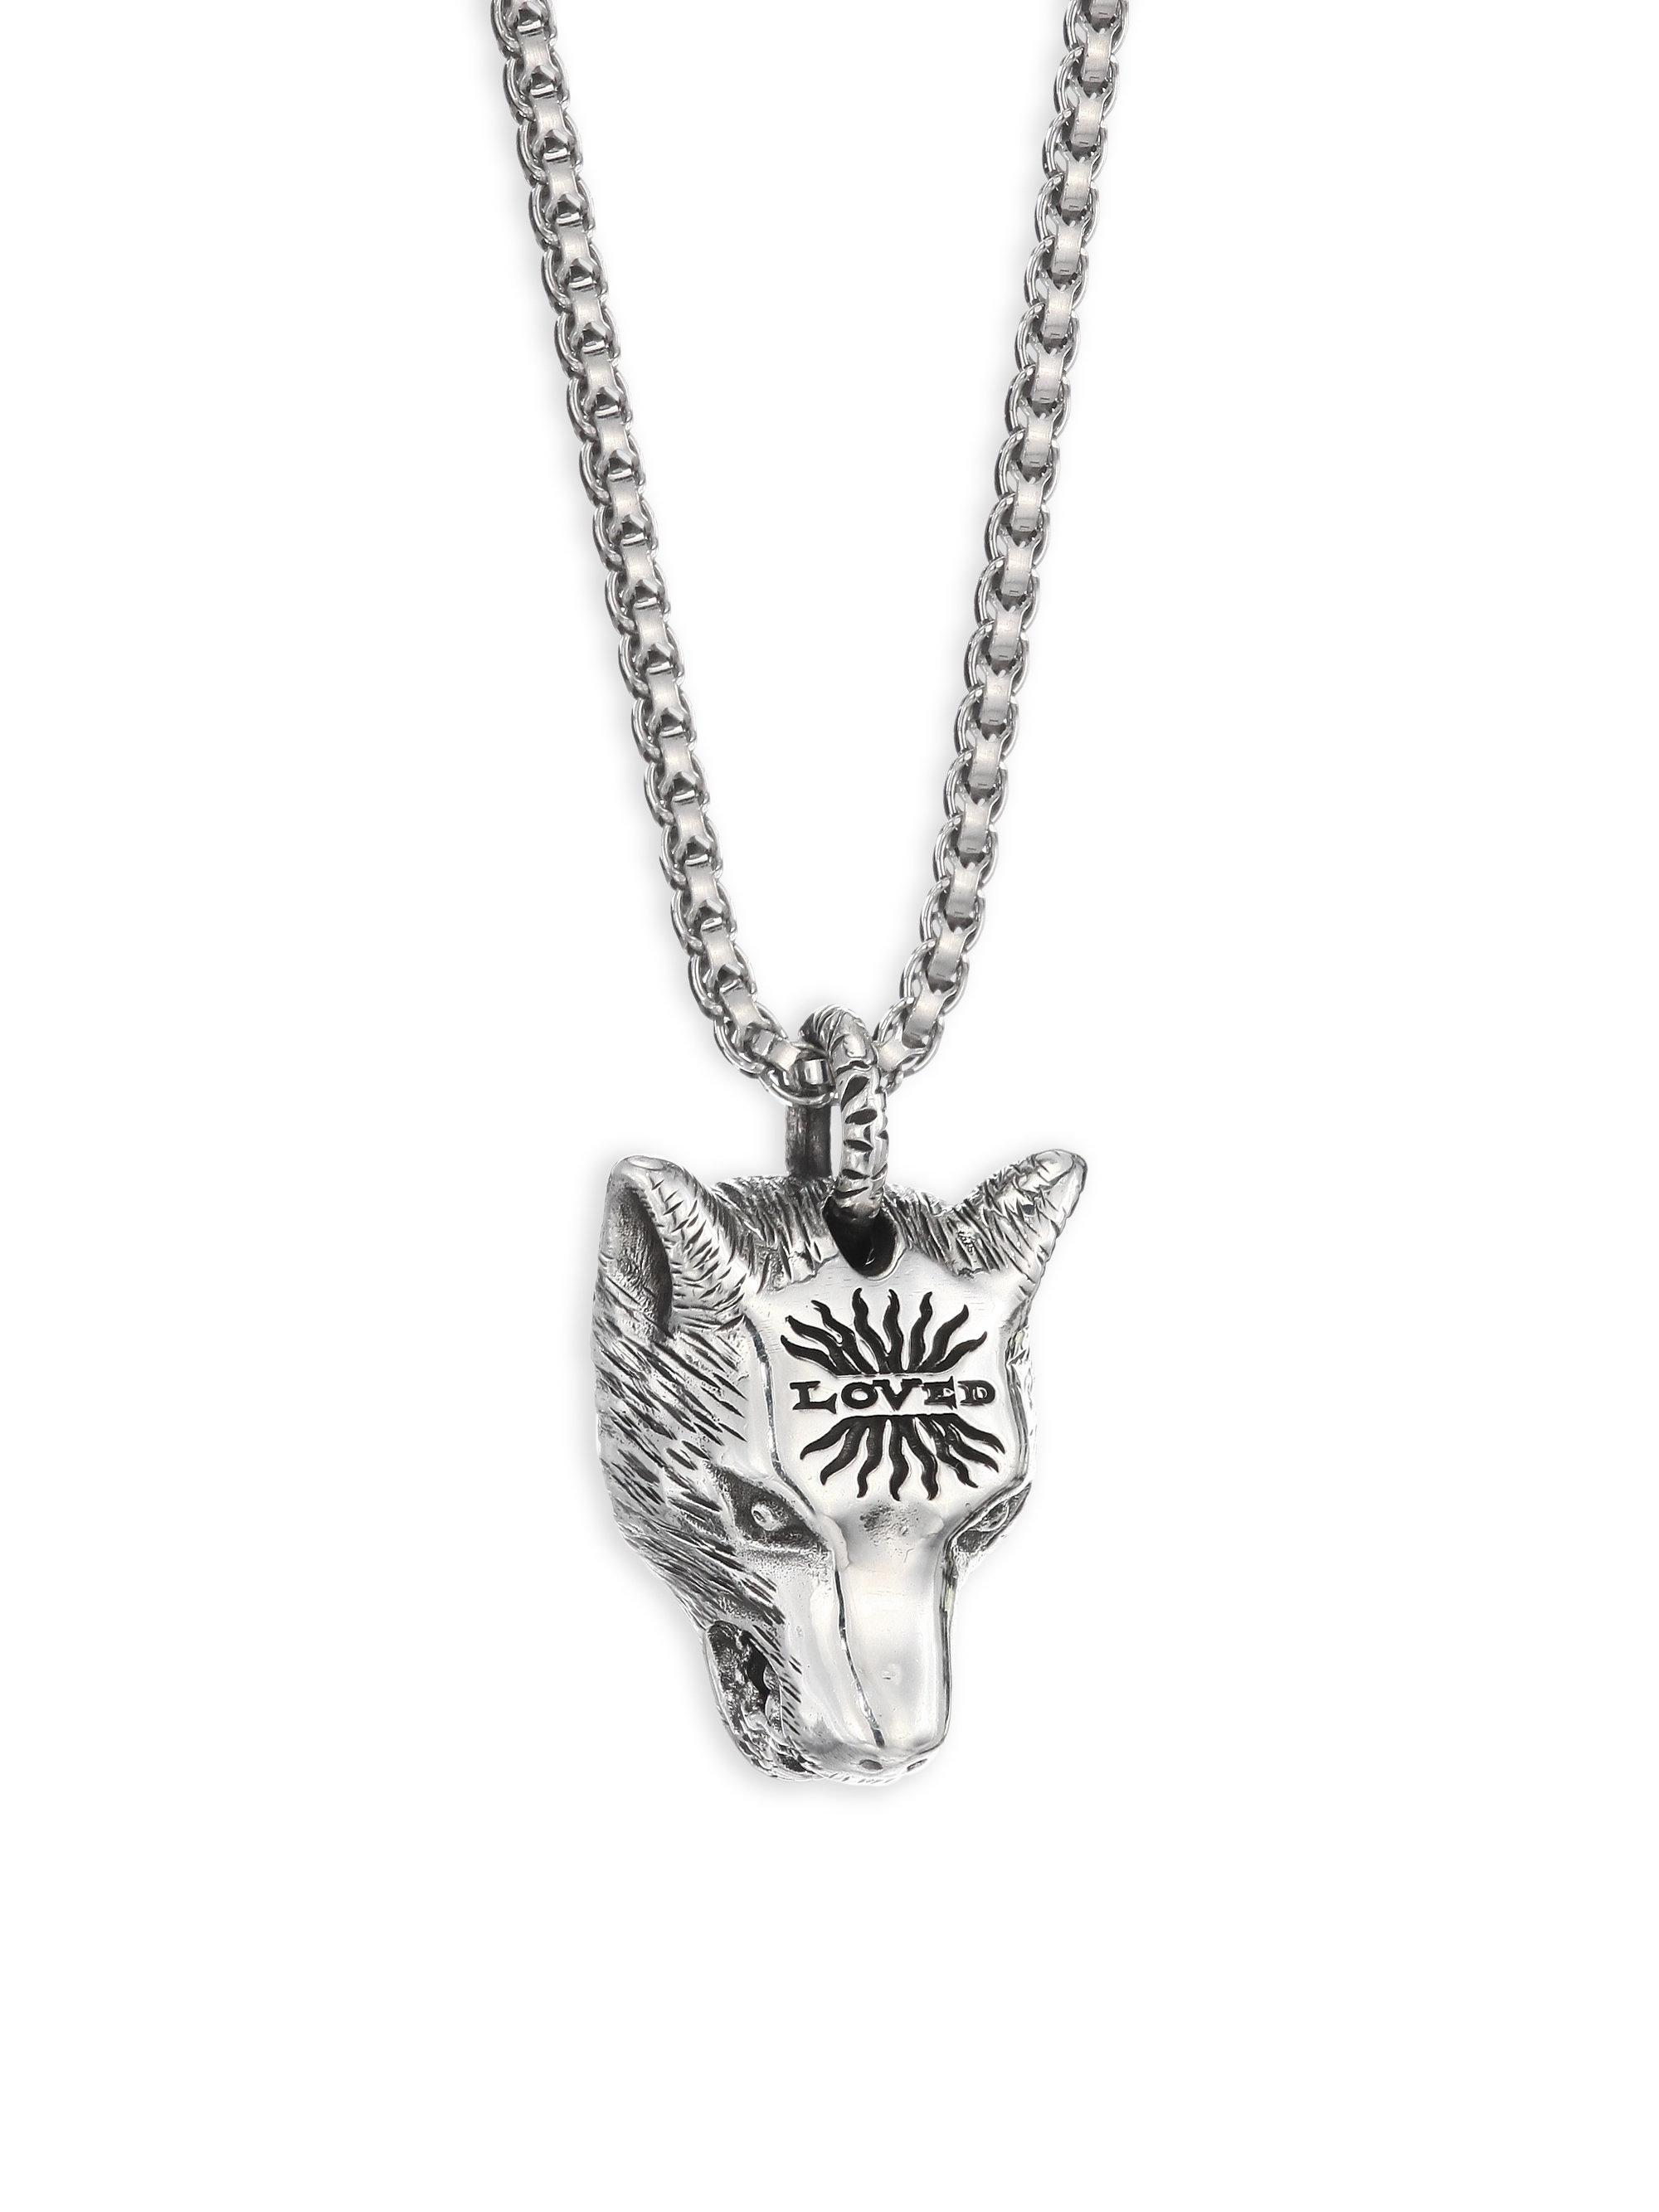 head necklace fang wolf tiger ksvhs dragon tooth pendant cute jewellery